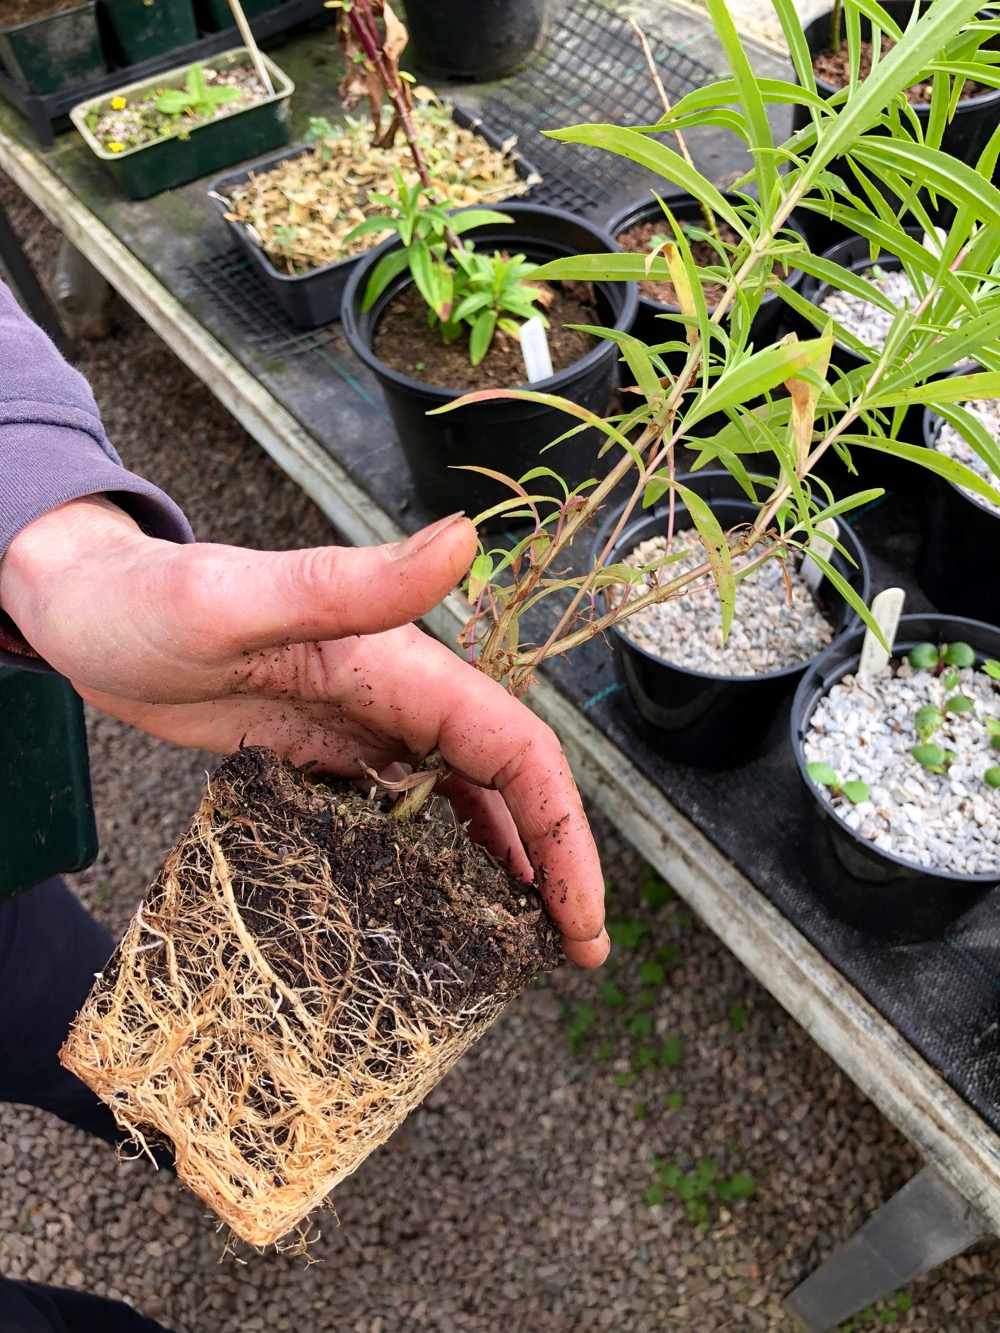 potted plant root system ready to be trimmed in Logie plant nursery